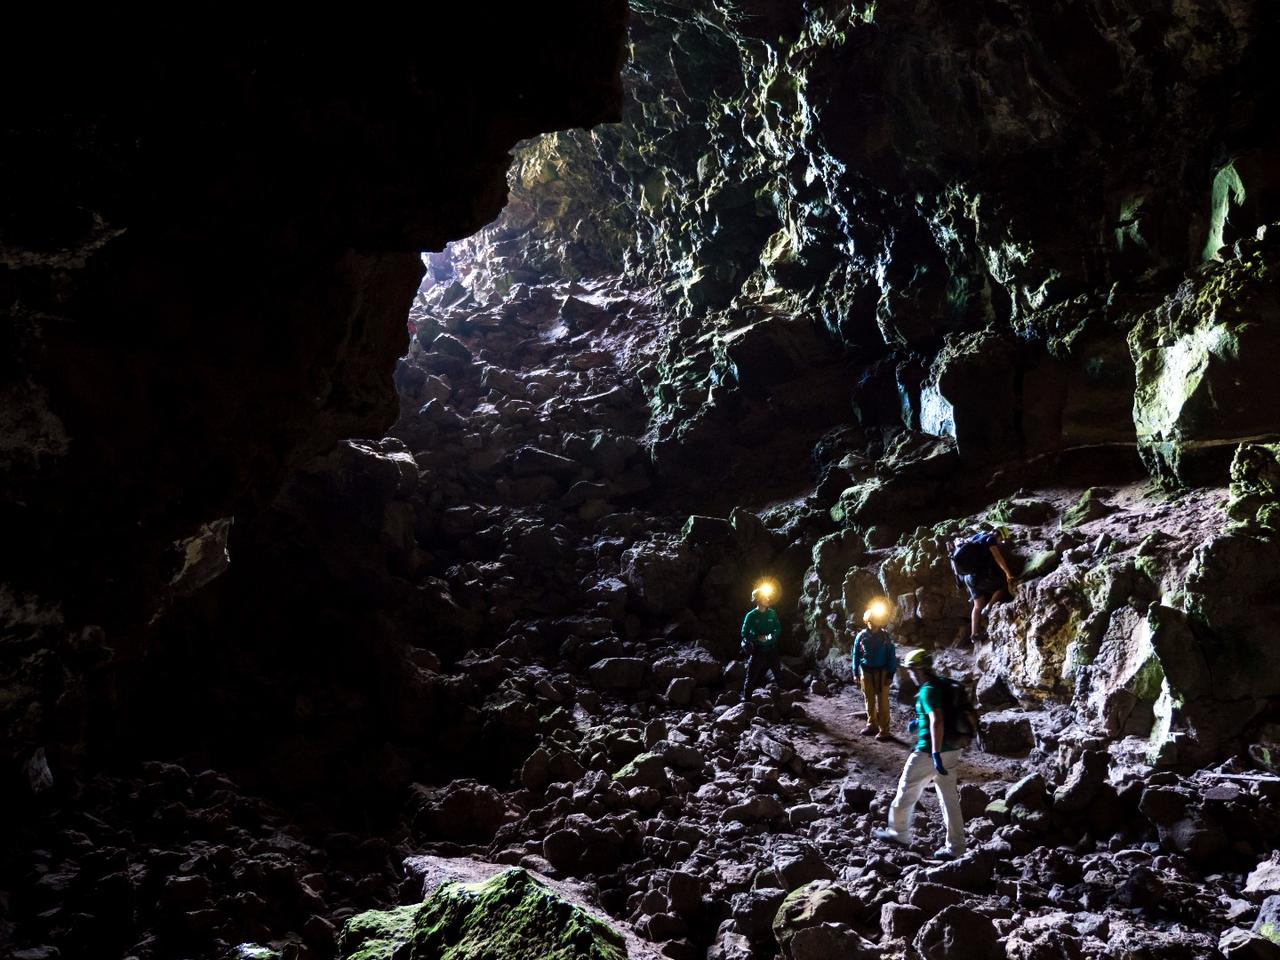 Lava tubes, such as these in the Canary Islands, could one day prove to be useful shelter for settlers on the Moon or Mars